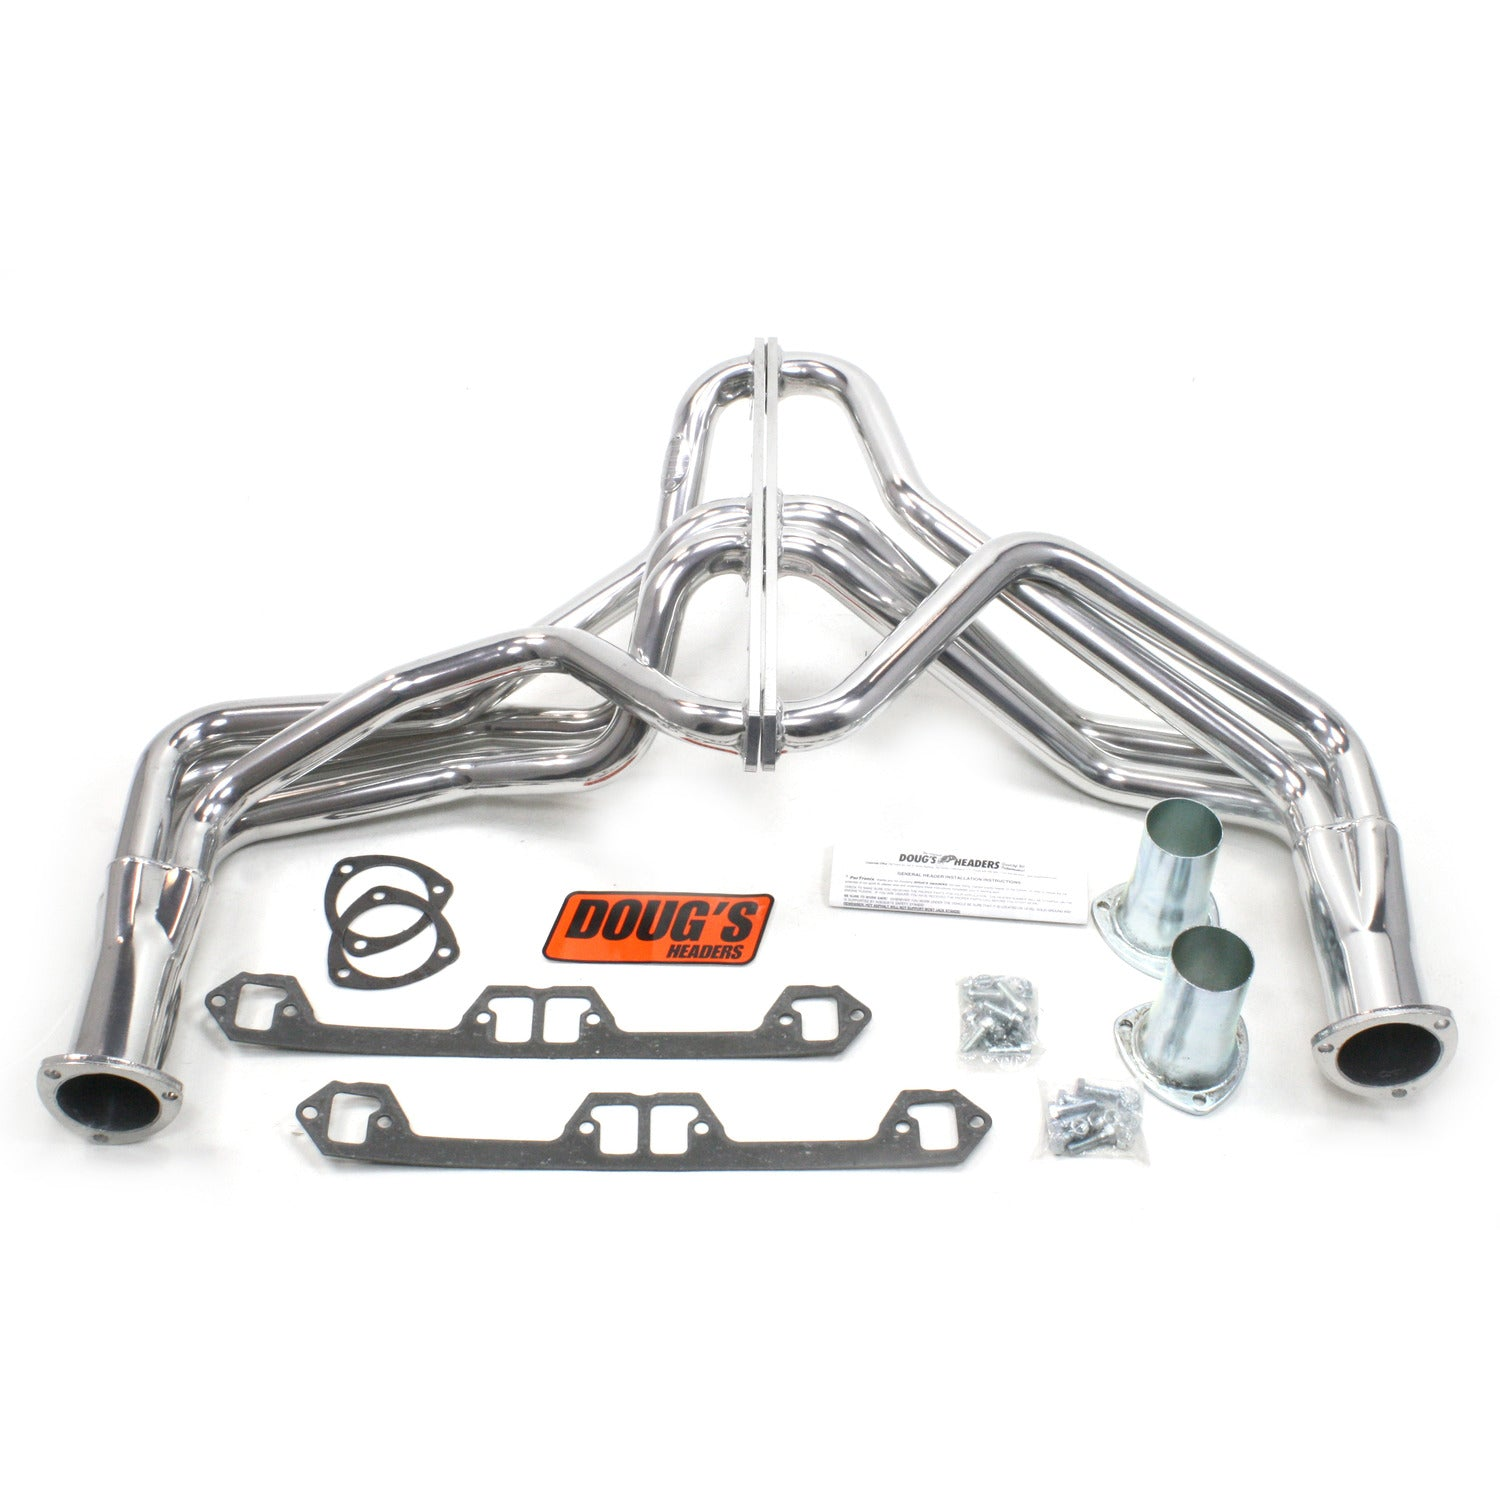 "Doug's Headers D190 1 5/8"" 4-Tube Full Length Header AMC Jeep V8 72-80 Metallic Ceramic Coating"